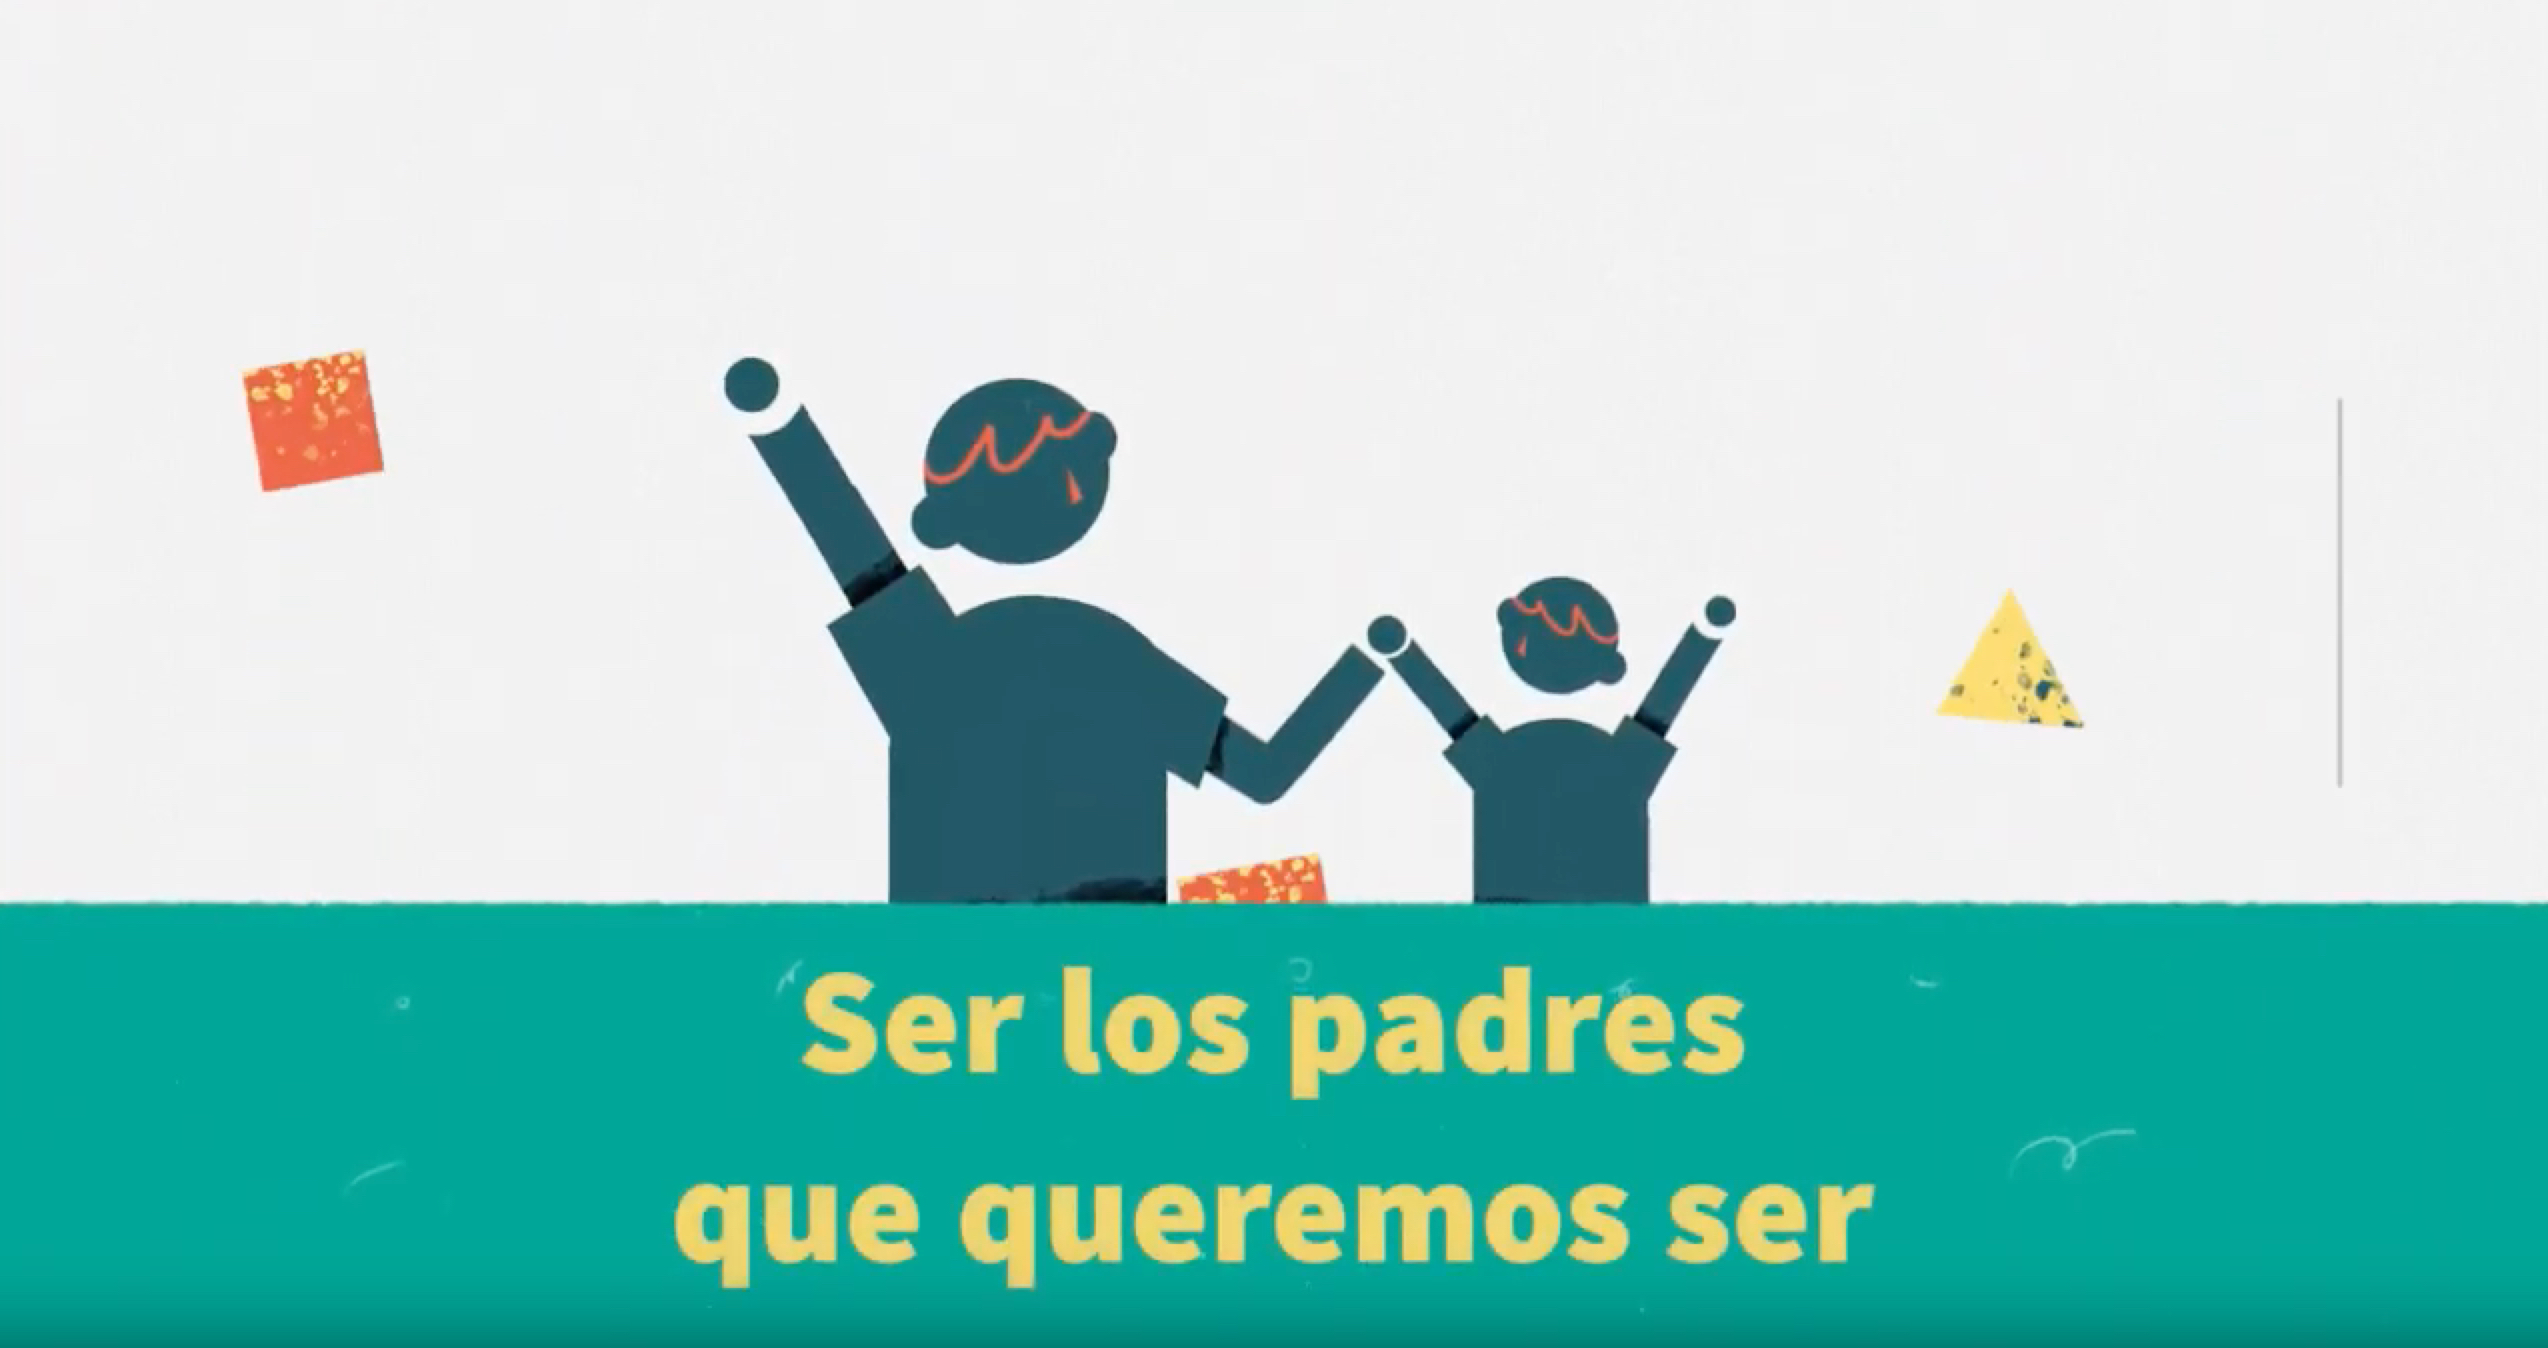 Illustrated adult and child holding hands with text 'Ser los padres que queremos ser'